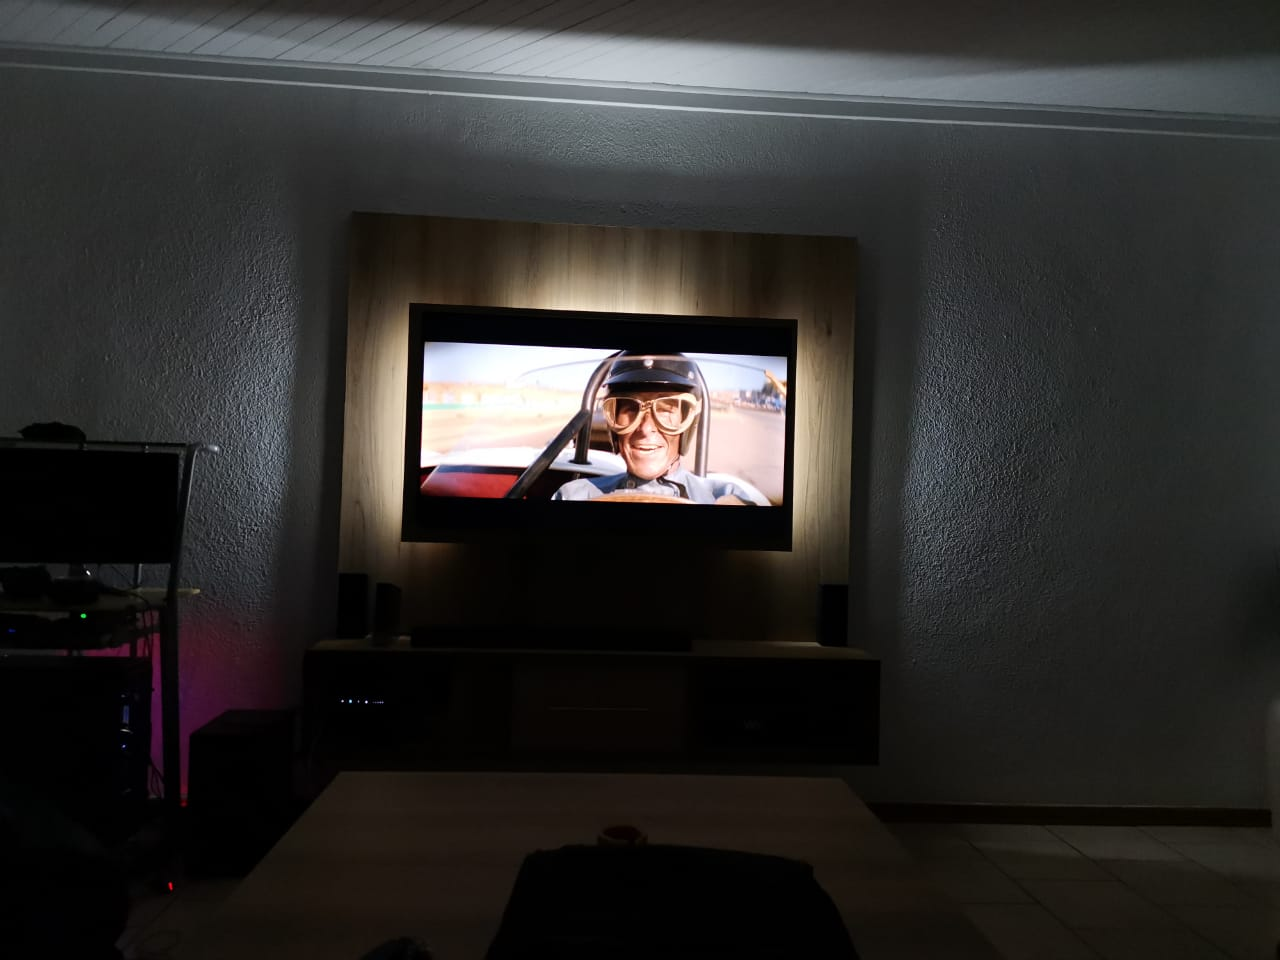 Wall mounted TV stand for 55 inch TV stand with matching square coffee table.